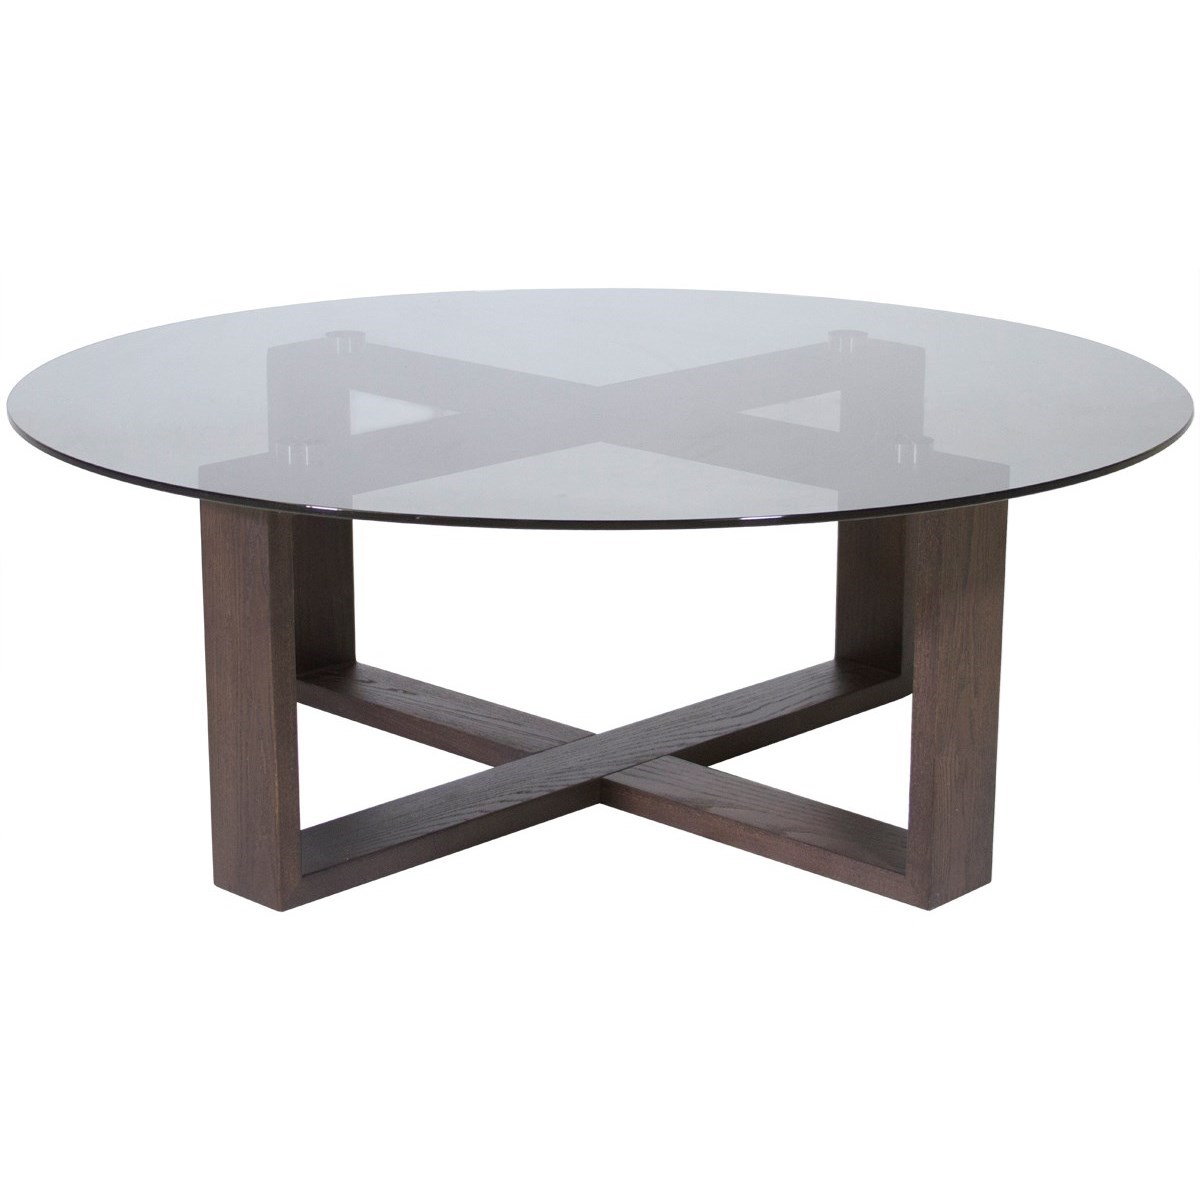 Amarone Round Central Table by Natuzzi Editions at Williams & Kay